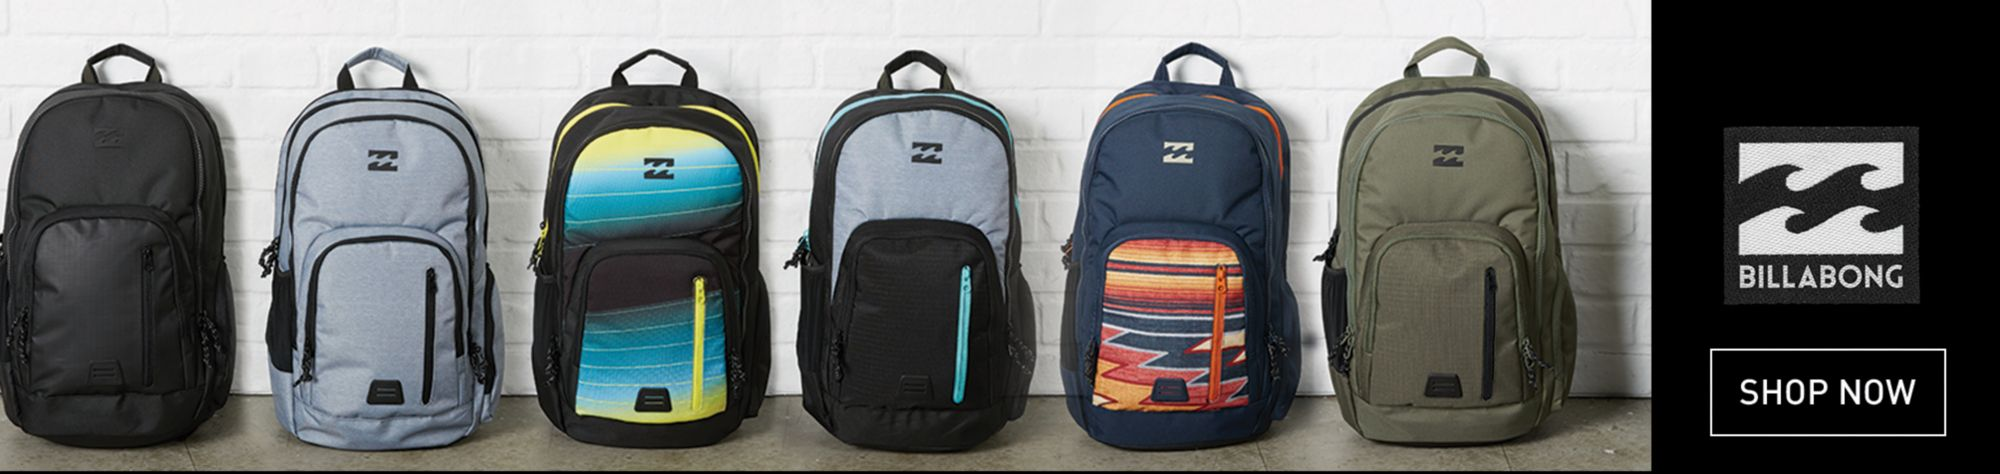 Billabong Backpacks